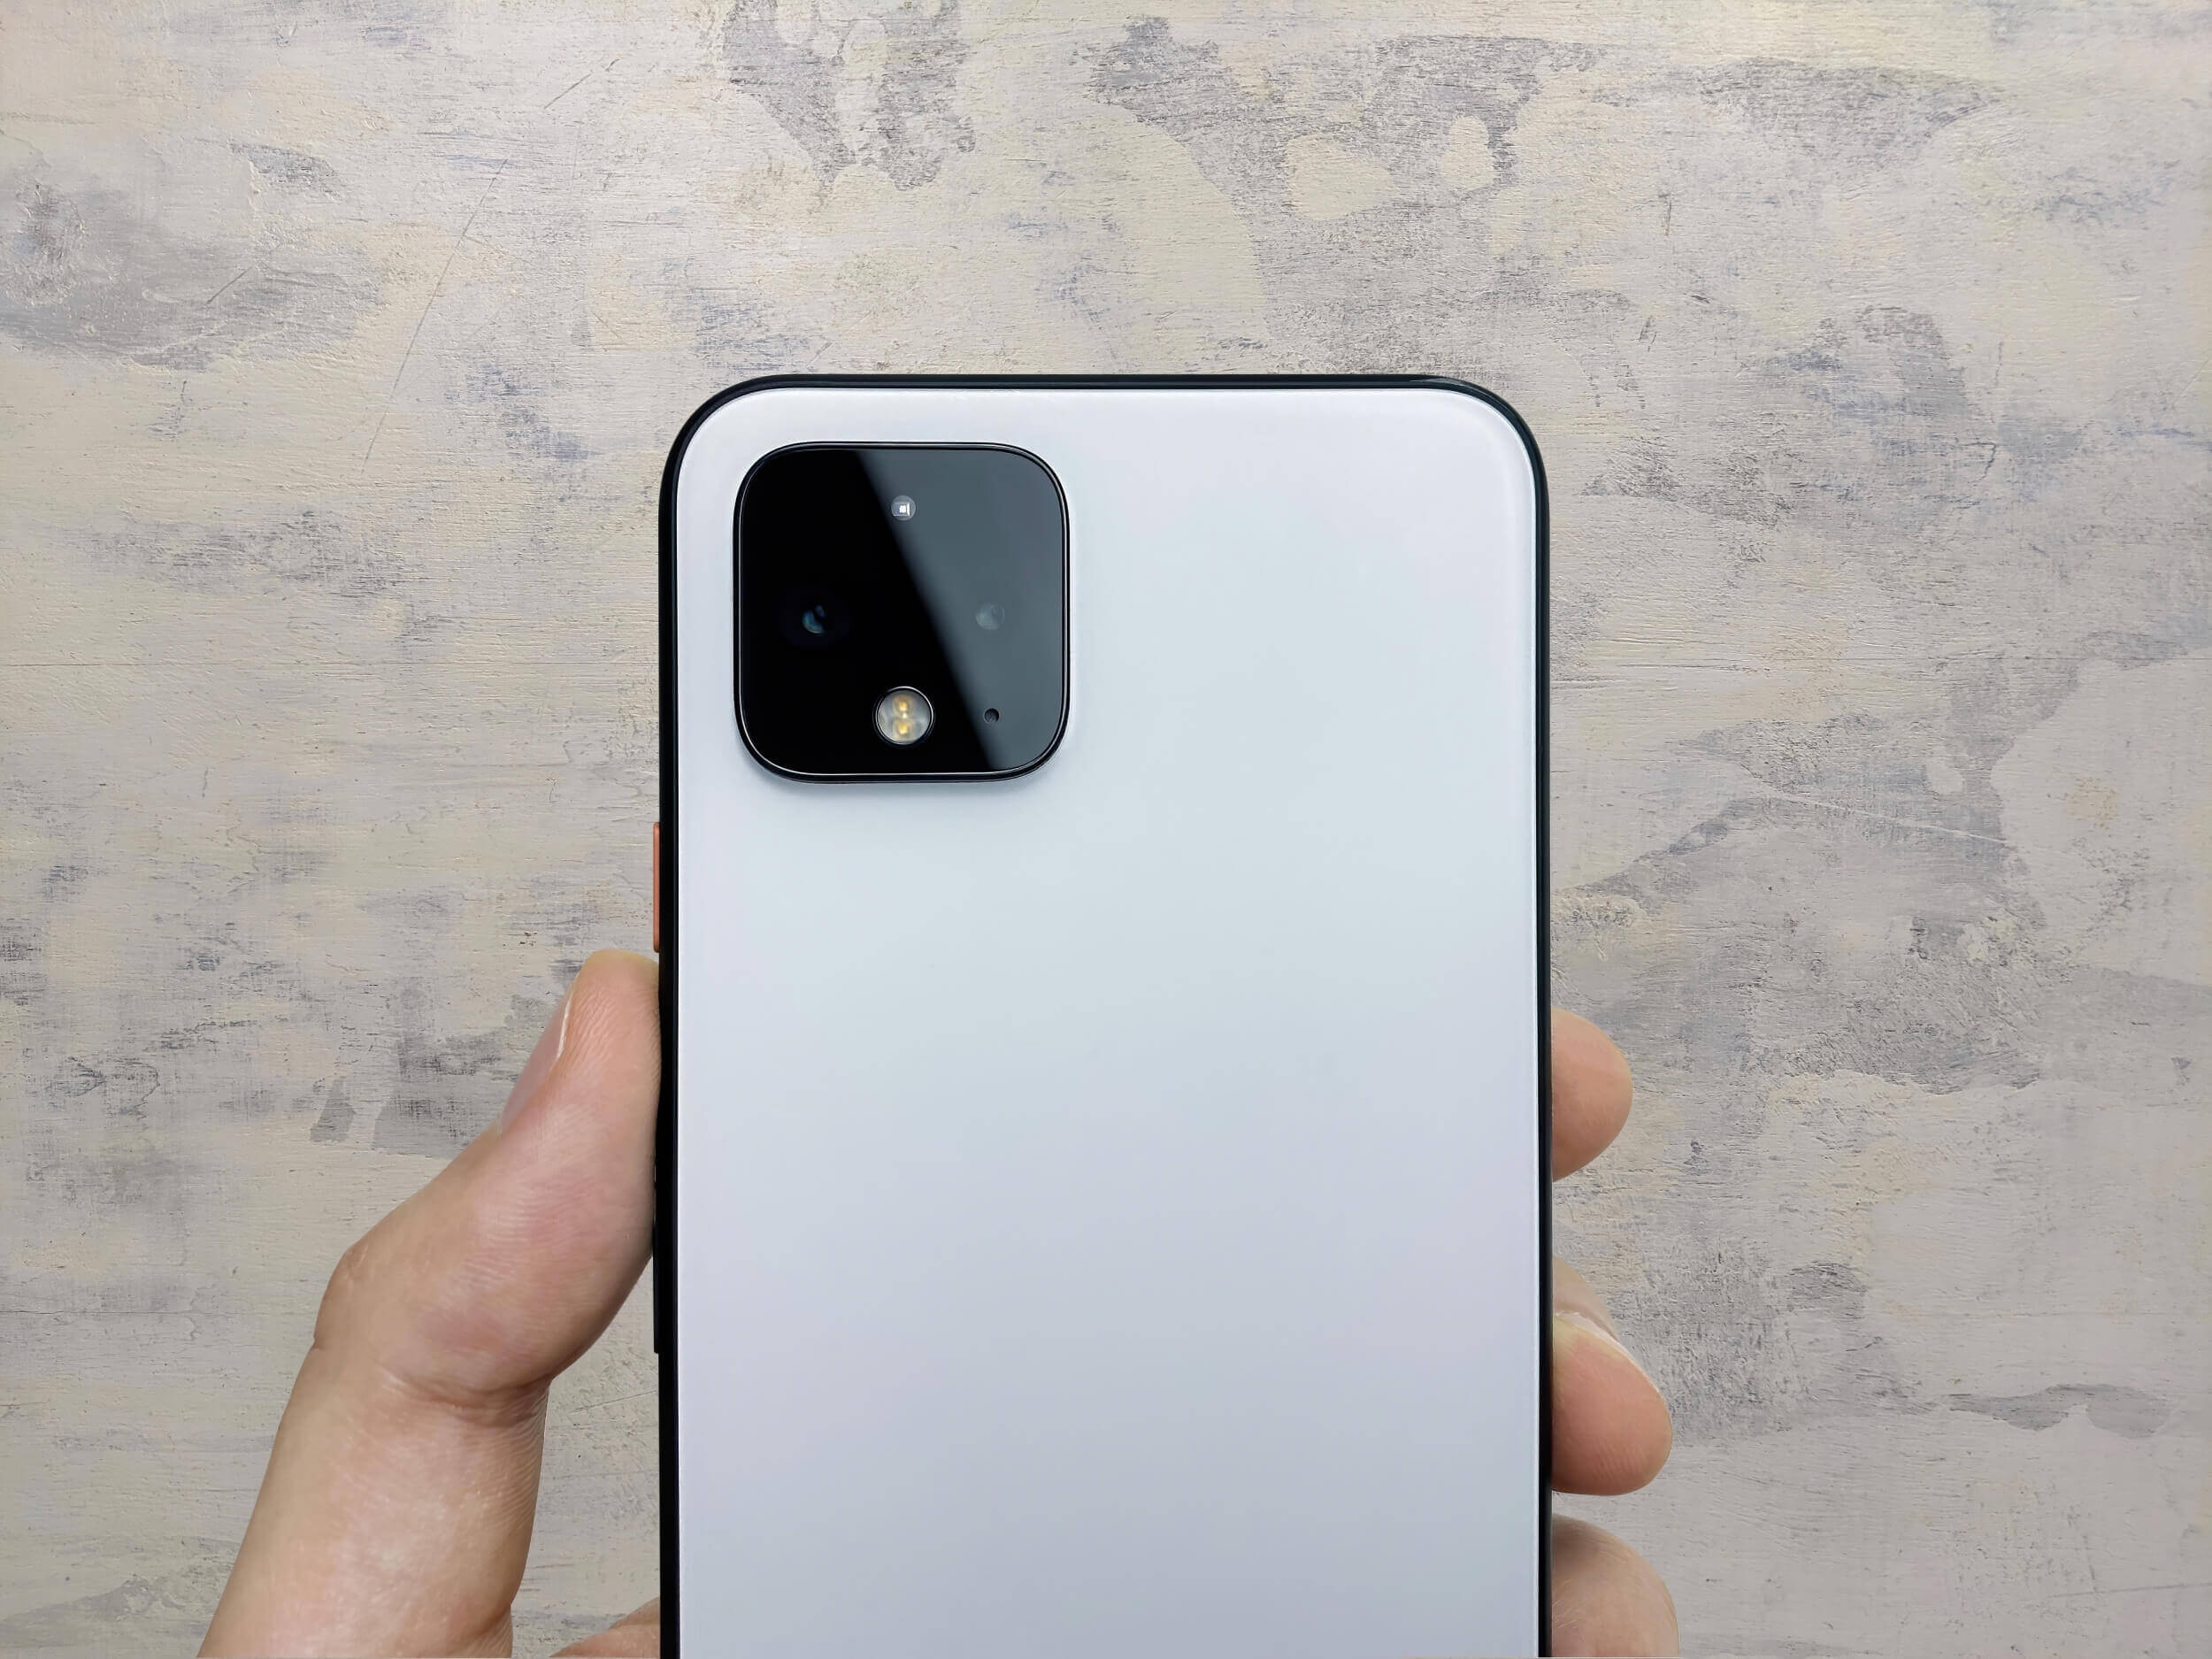 Google stops selling the Pixel 4 and Pixel 4 XL